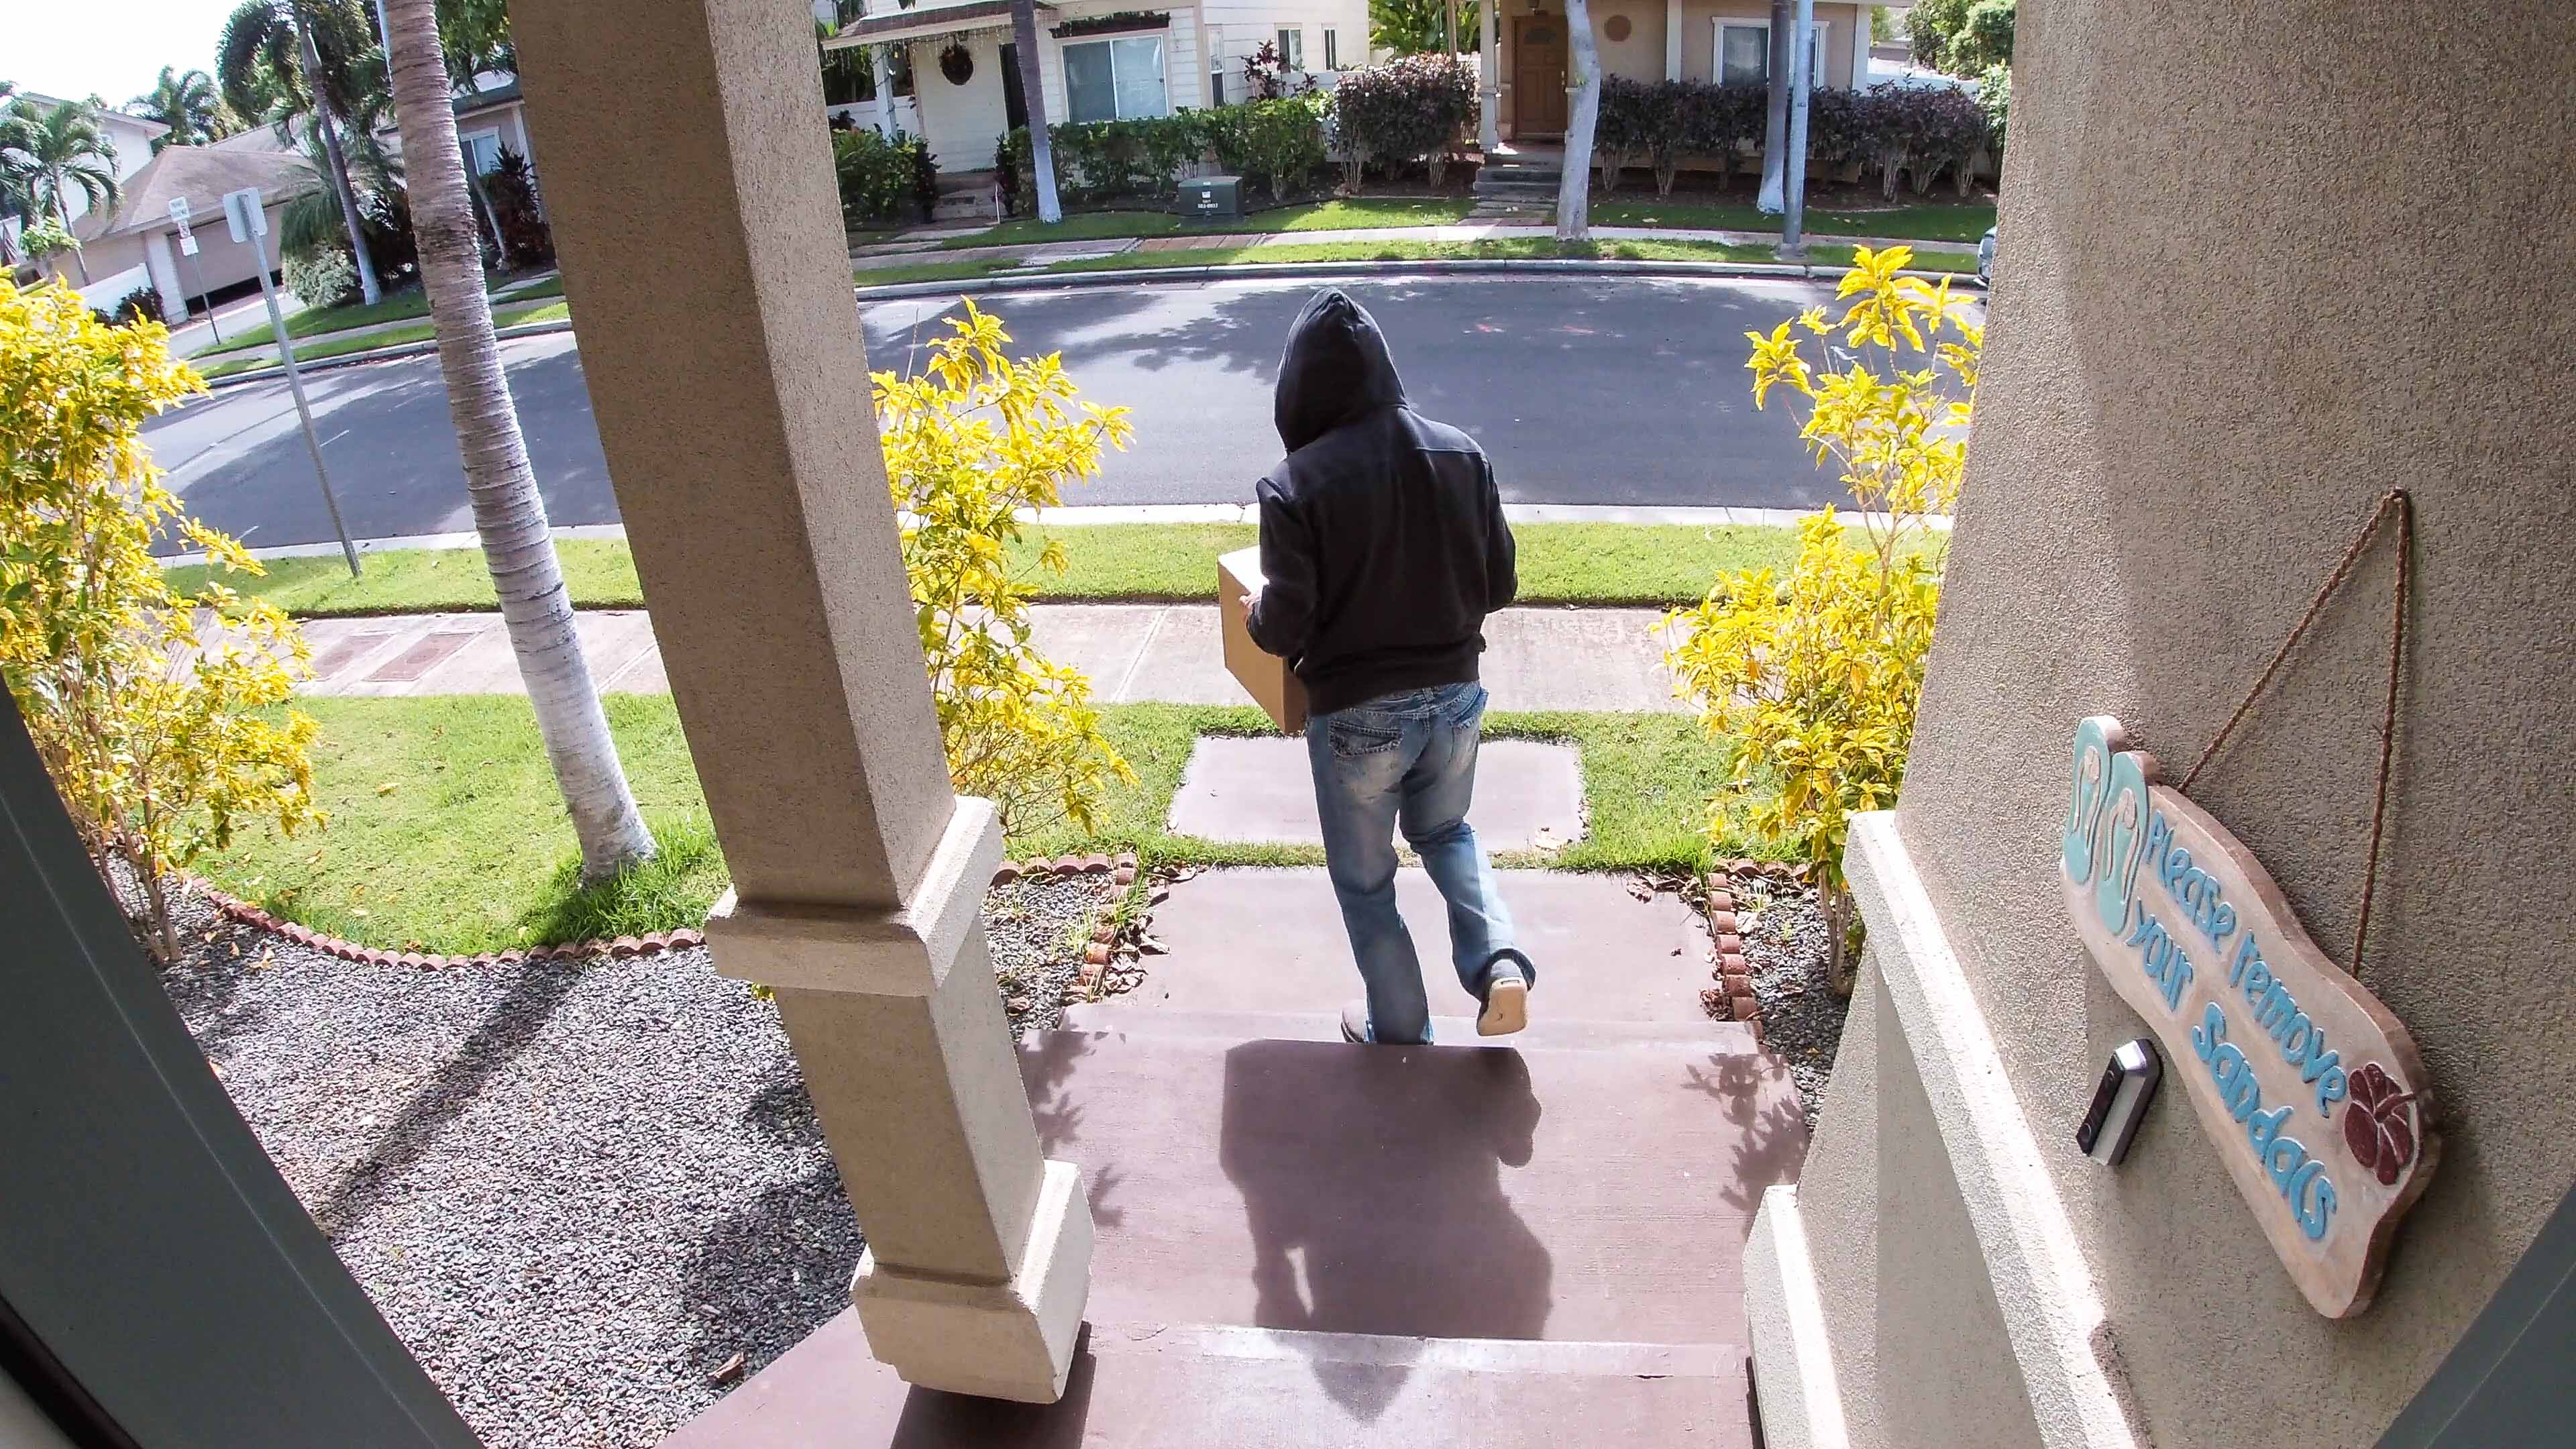 A porch pirate in action, stealing a package from a residential home.